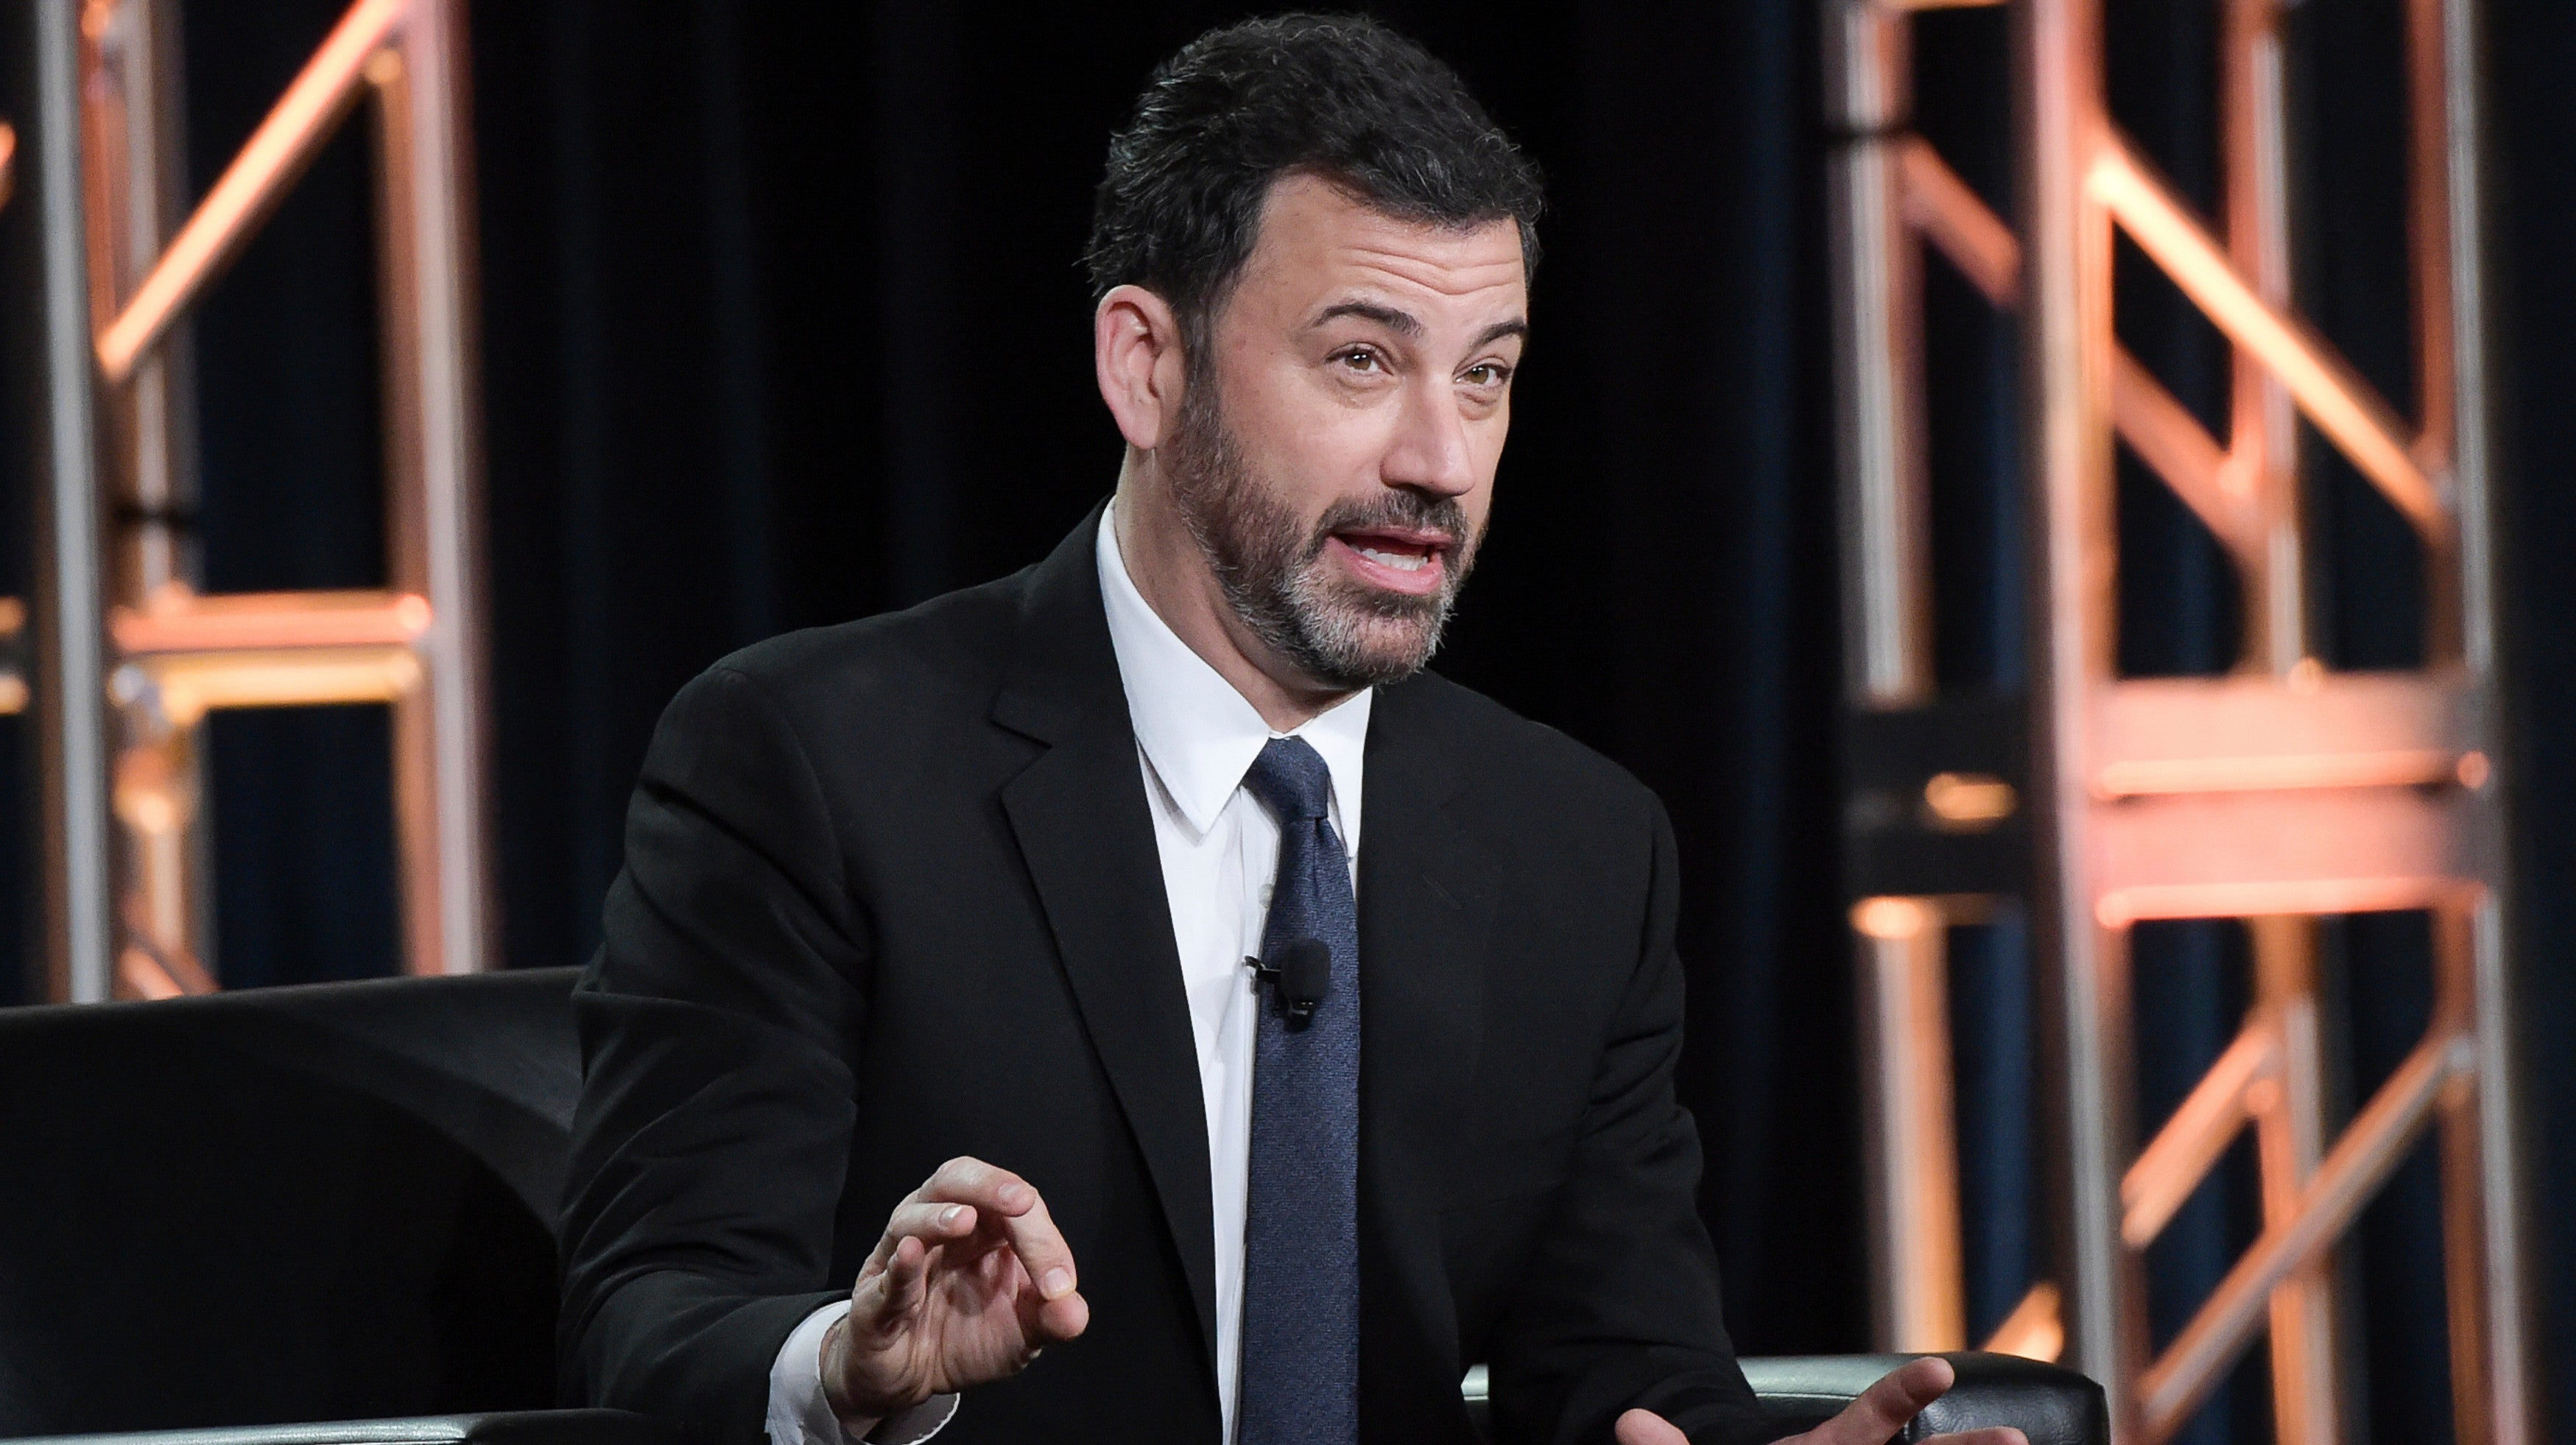 Jimmy Kimmel Live Fined $580,000 For Using Emergency Alert Tone In Very Expensive Joke